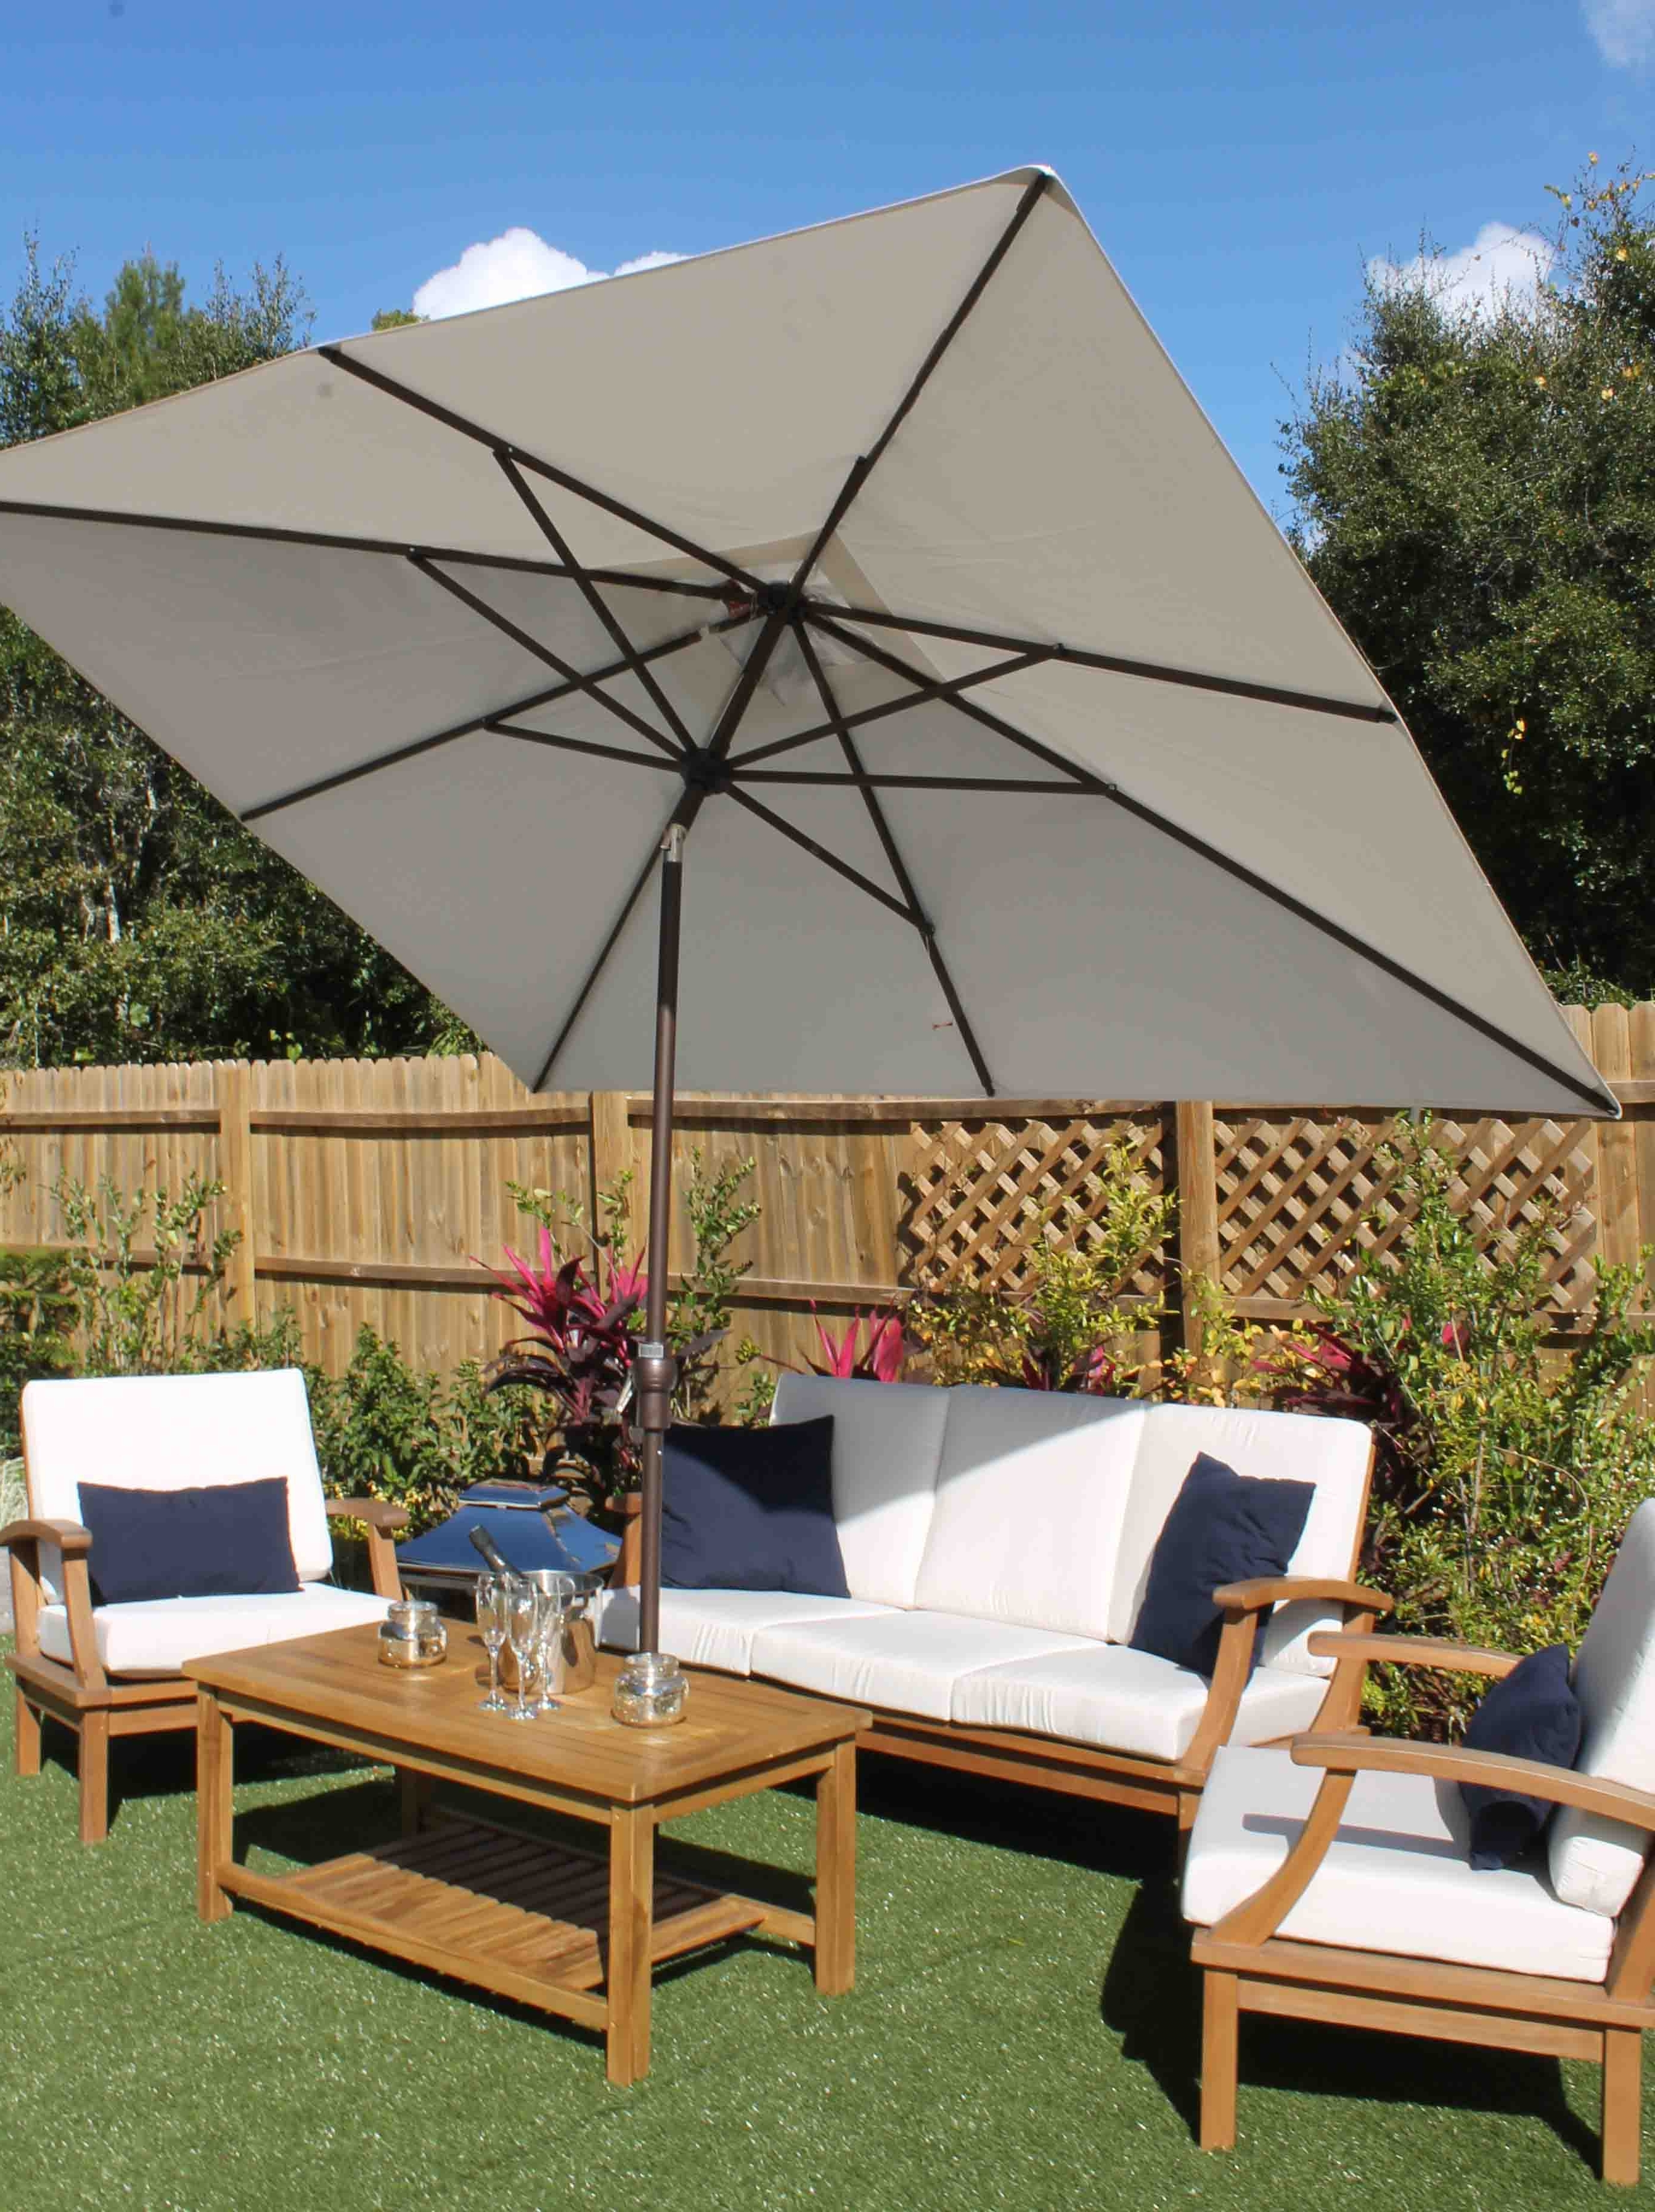 Oceanic Intended For Well Known Sunbrella Teak Umbrellas (View 11 of 20)